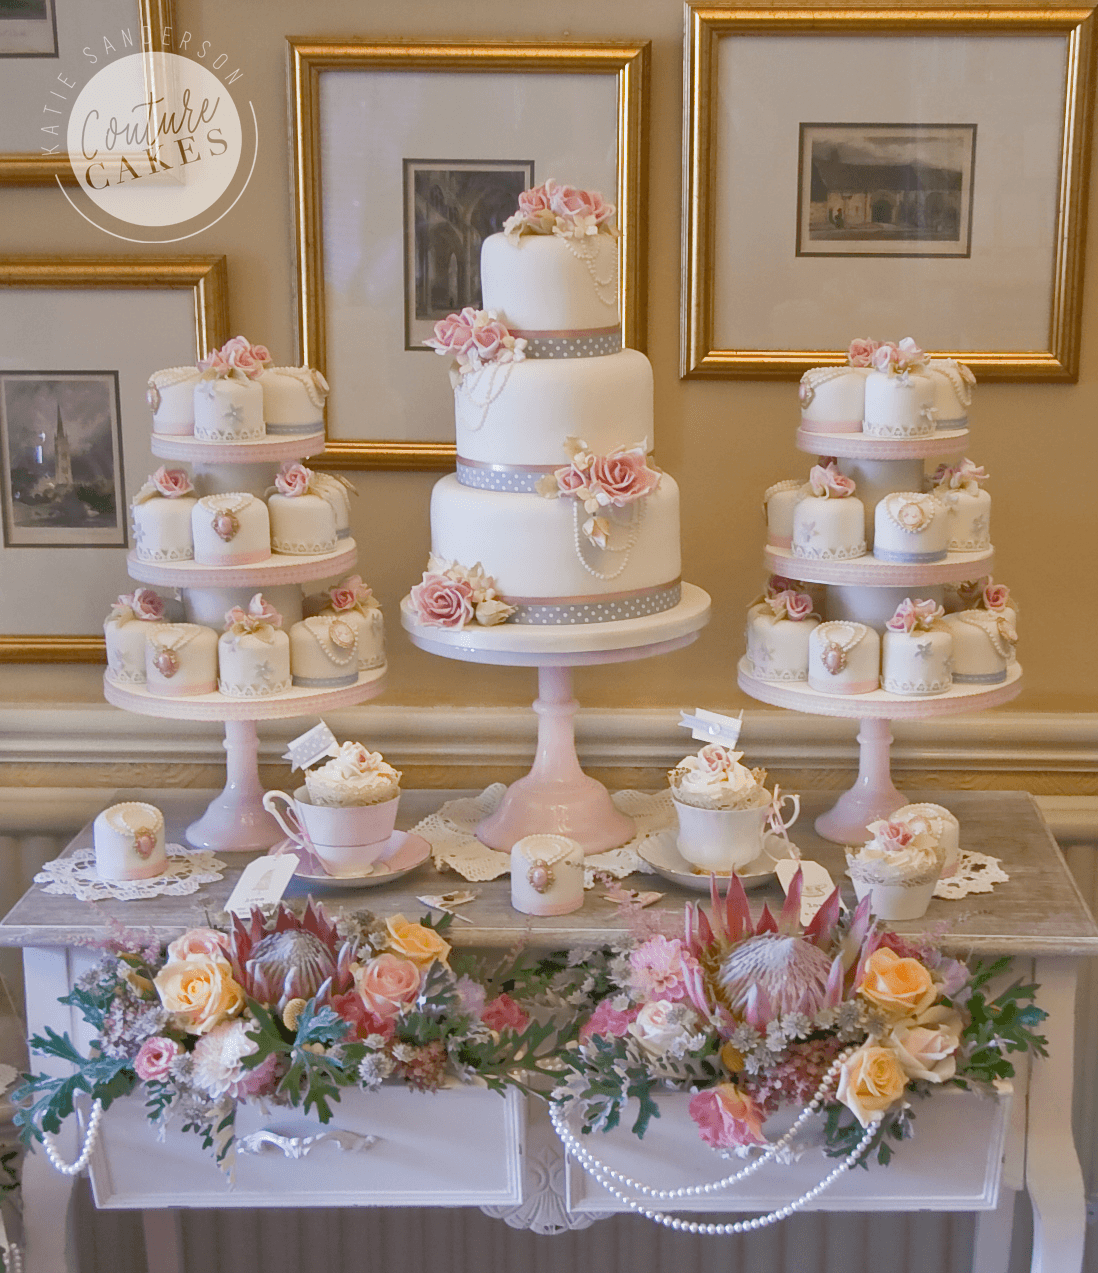 Serves 70 portion cake and 40 mini cakes, Cake Price £545 (for 70 portion cake), plus £420 for 40 mini cakes & tiered stands